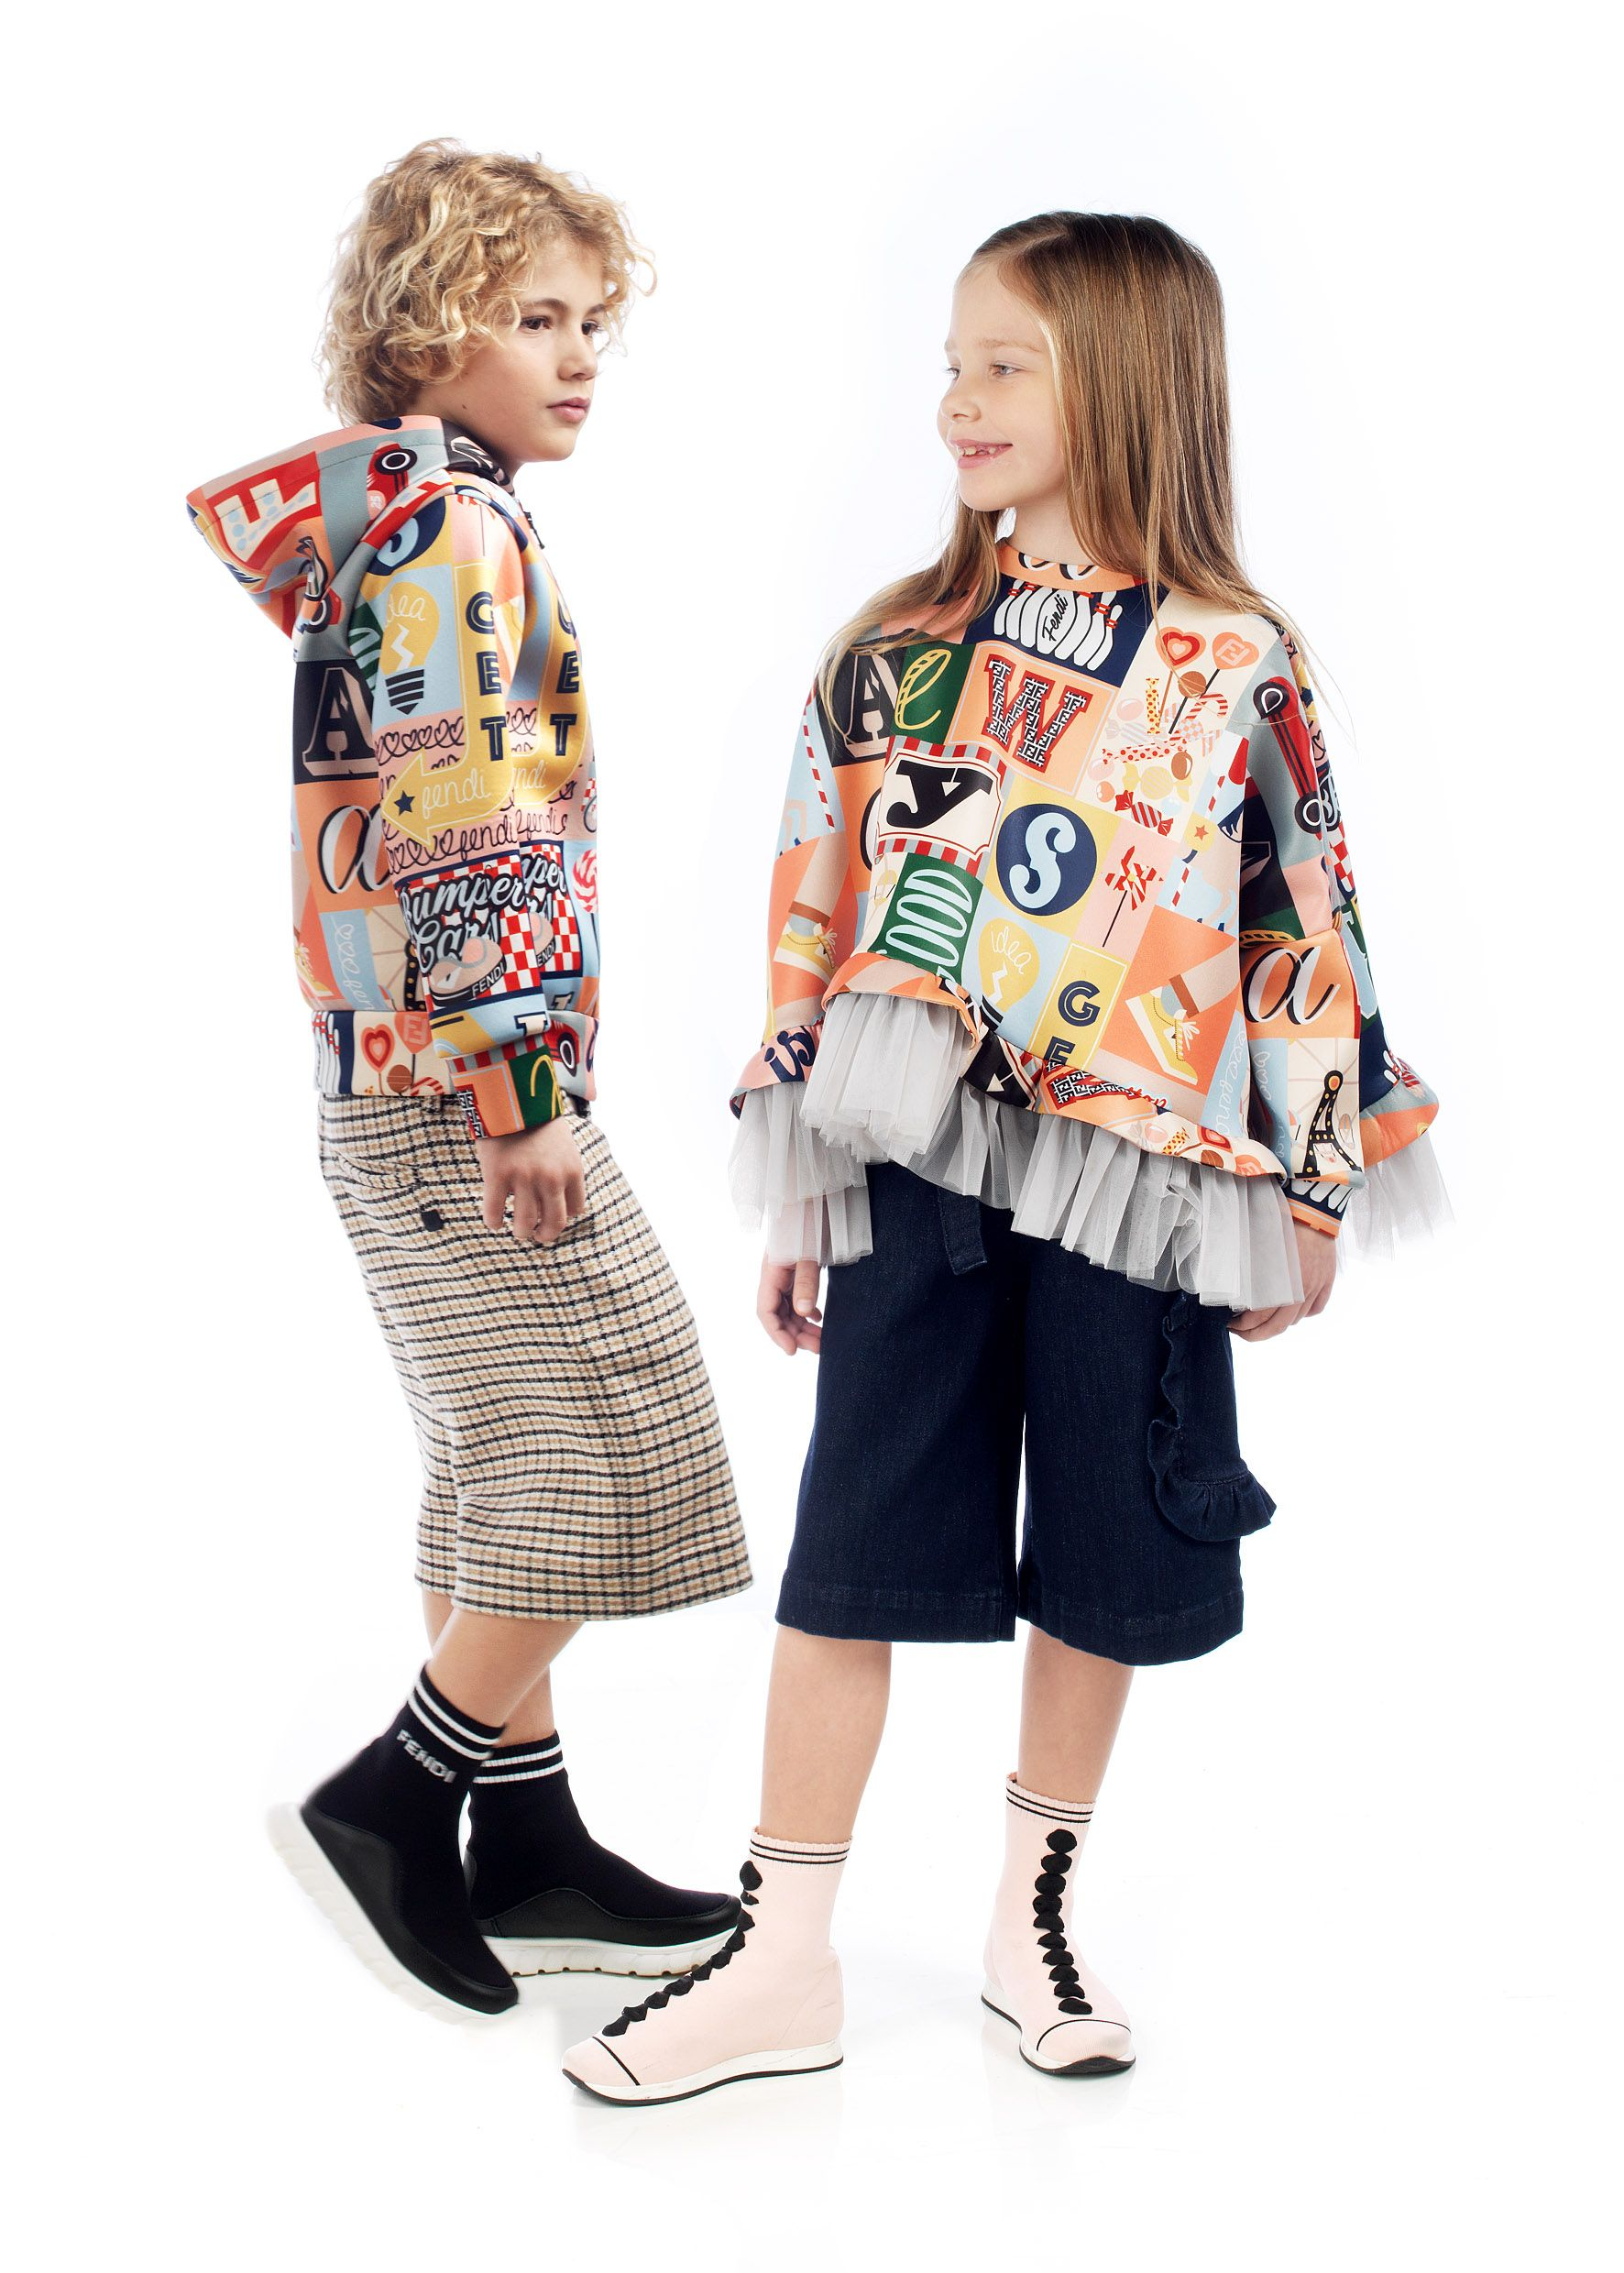 Fendi Kids Fall Winter 2018 19 Collection Now In Selected